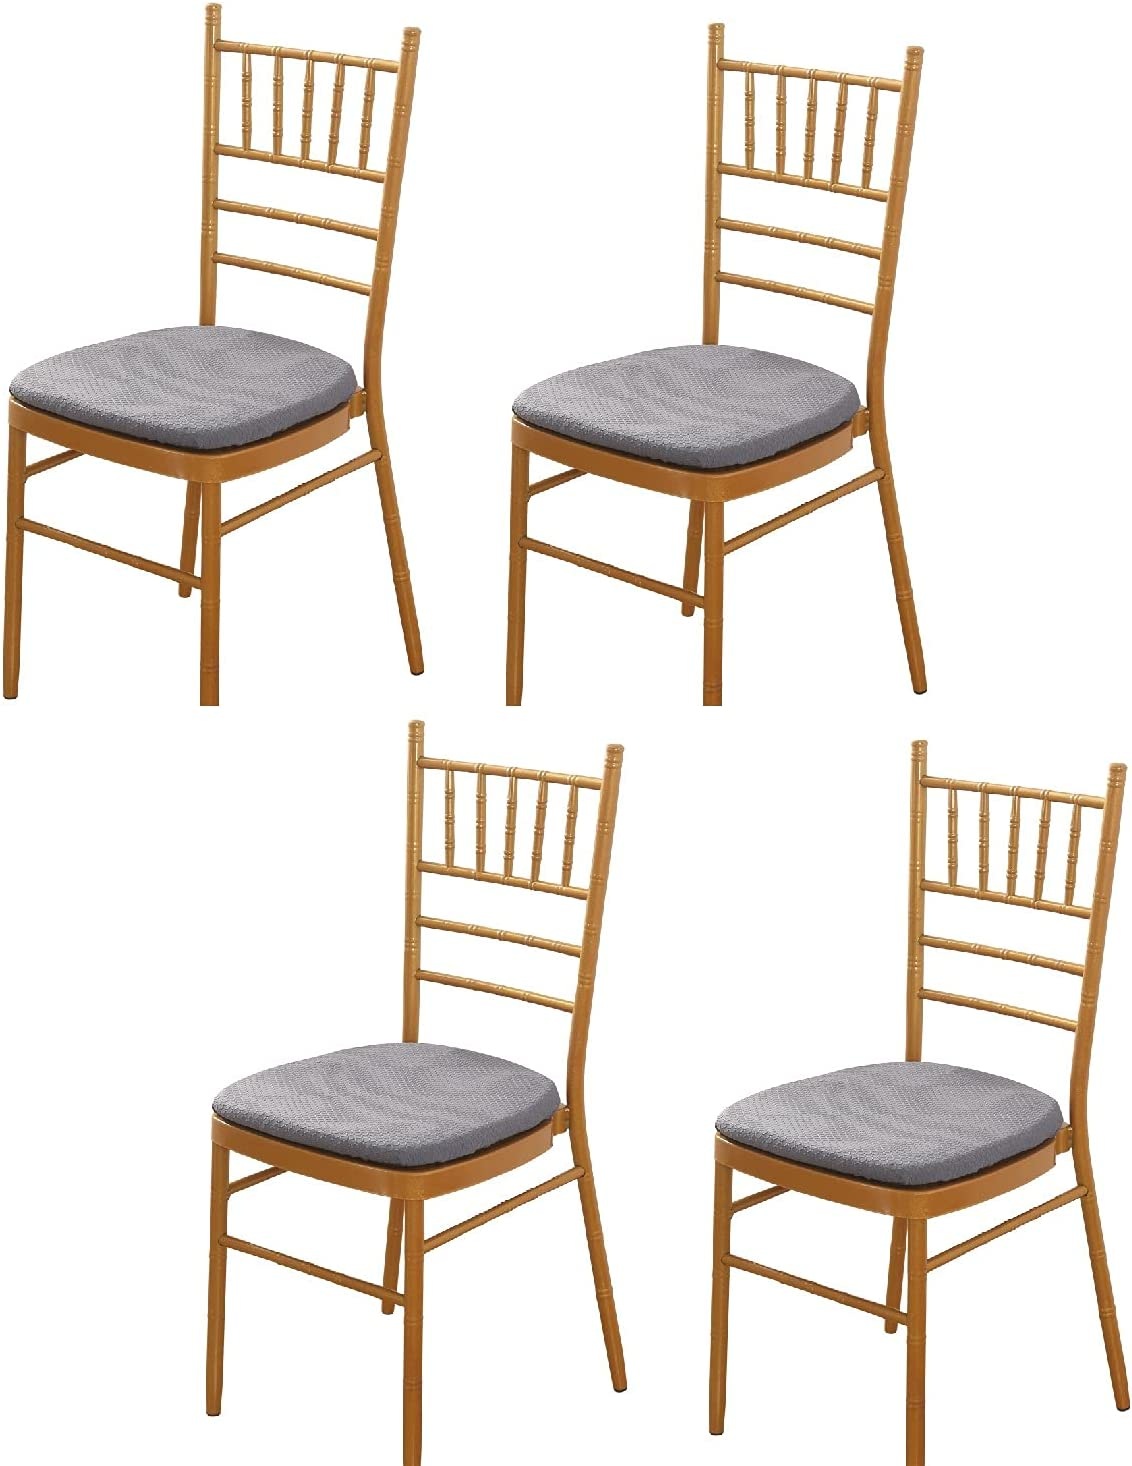 Padgene Stretch Printed service Dining Chair Covers Removable Wash Seat Gifts